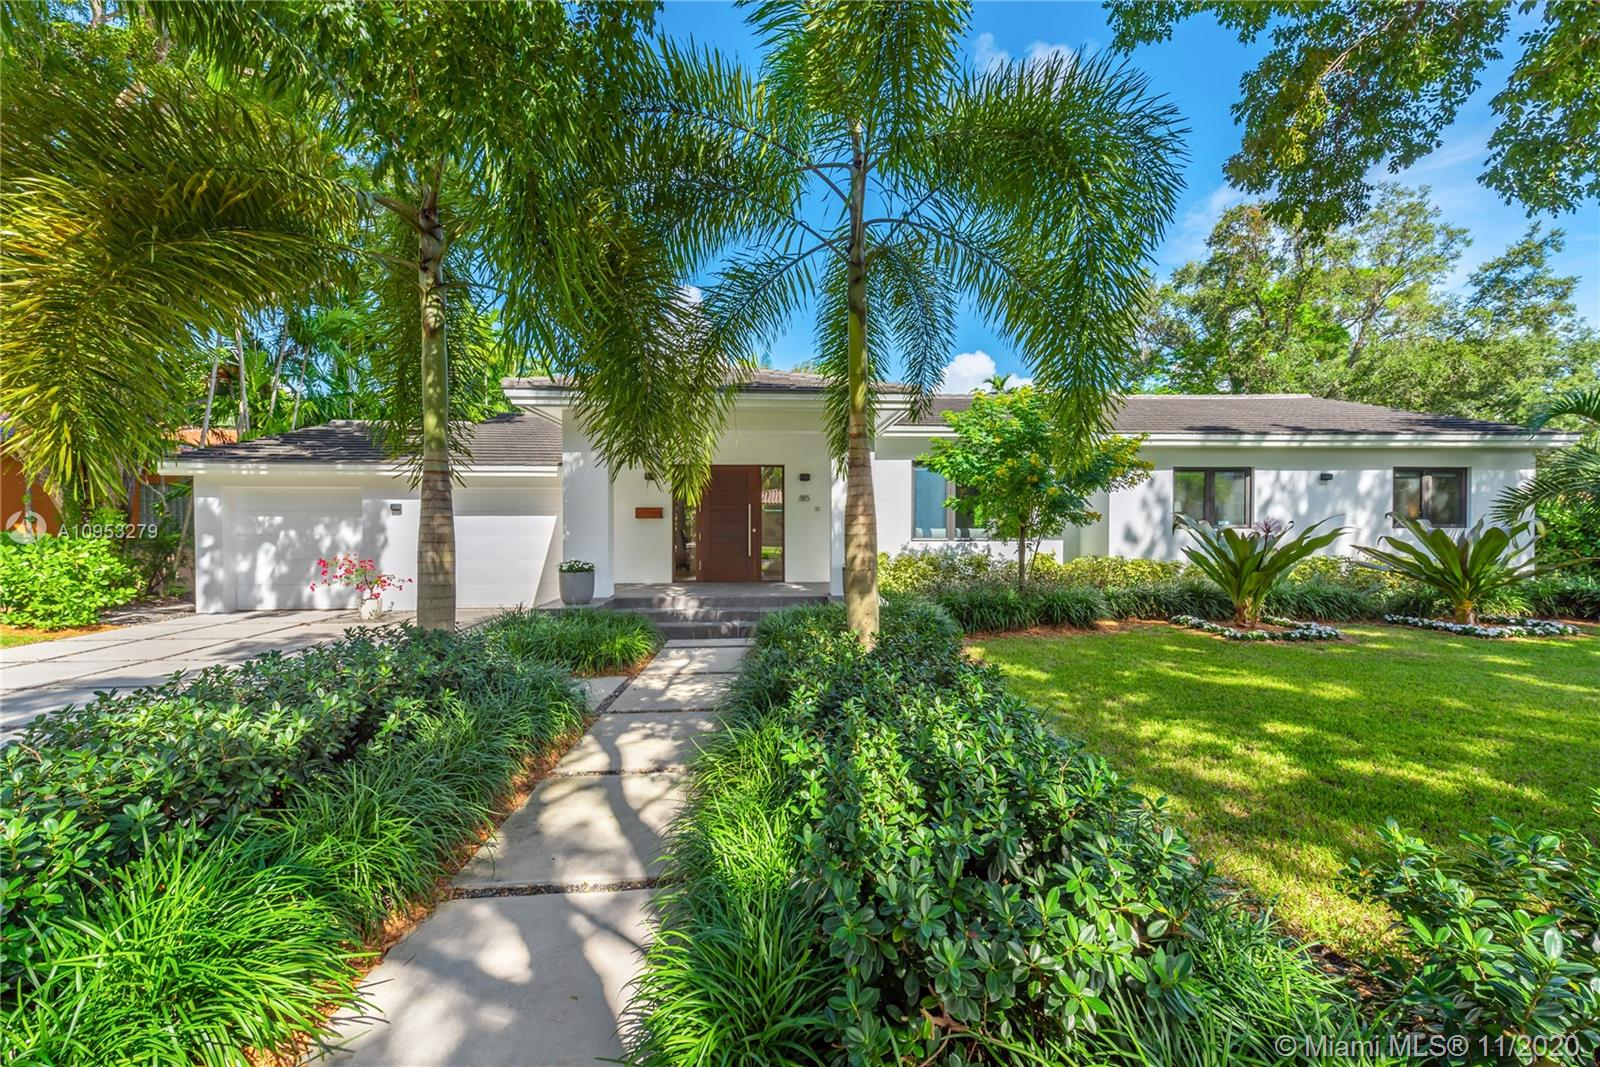 Details for 815 Catalonia Ave, Coral Gables, FL 33134